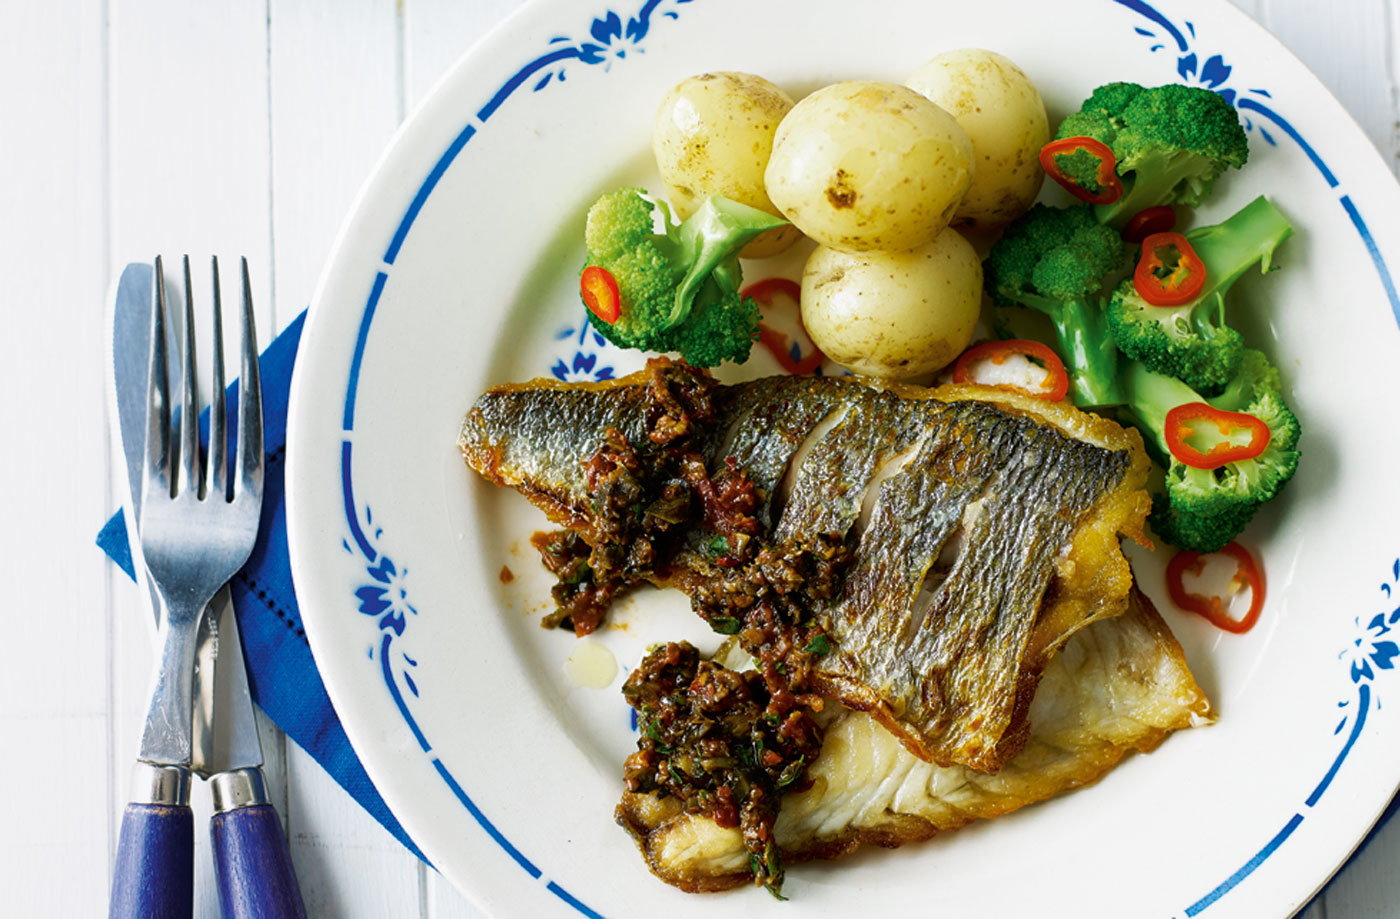 Pan-fried sea bream with olive and tomato tapenade recipe